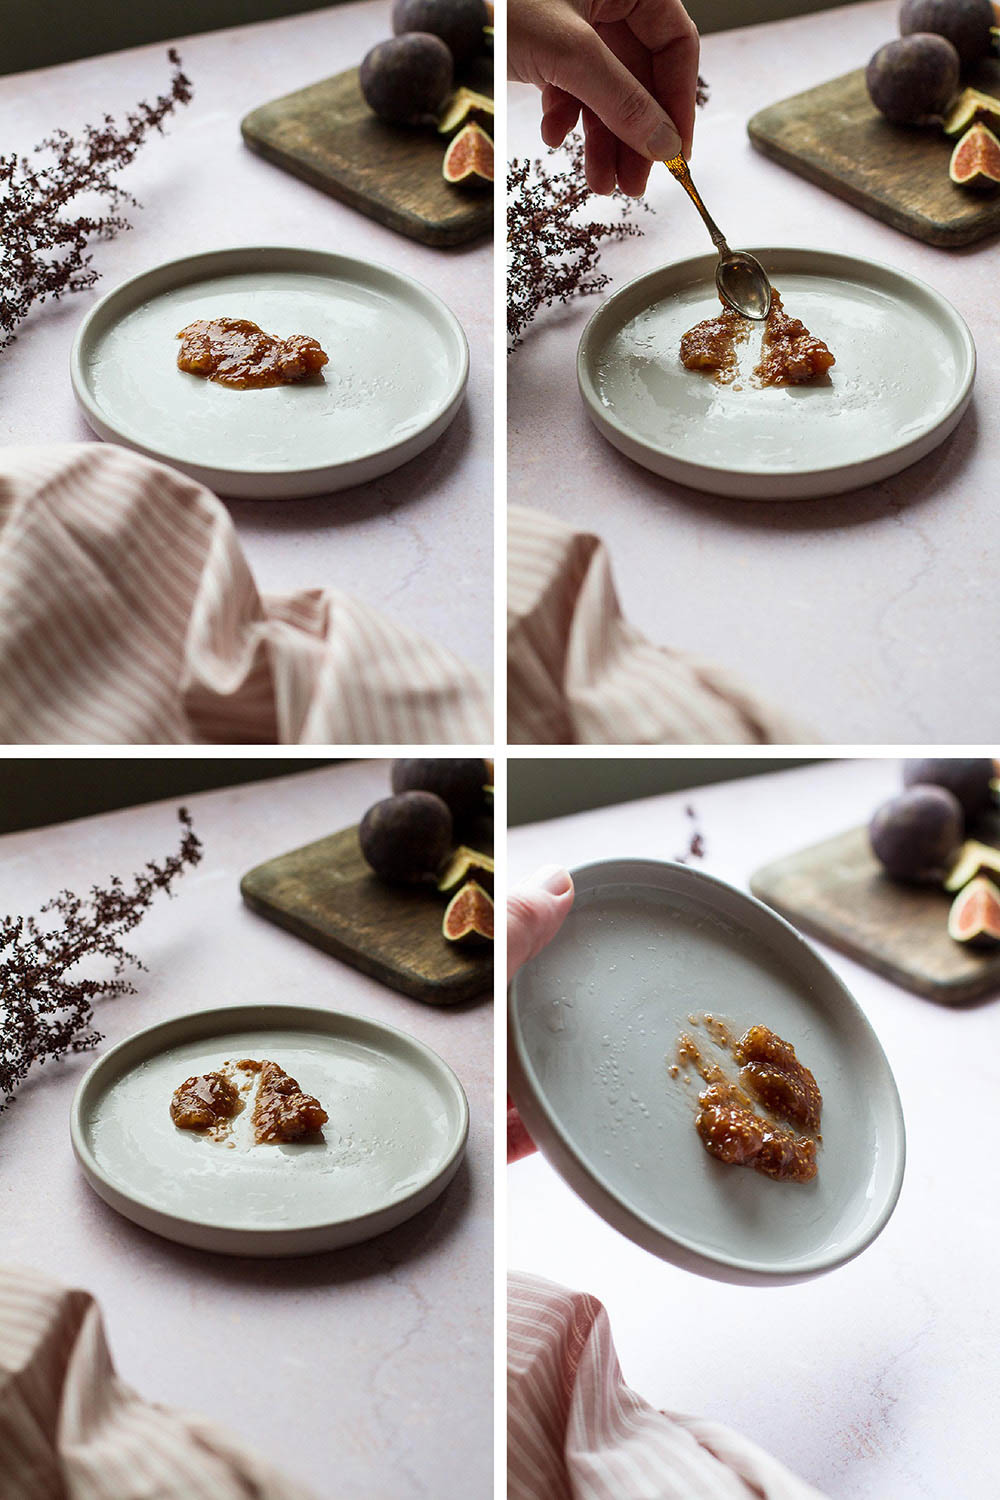 Steps to test the gelling of jam on a cold plate.